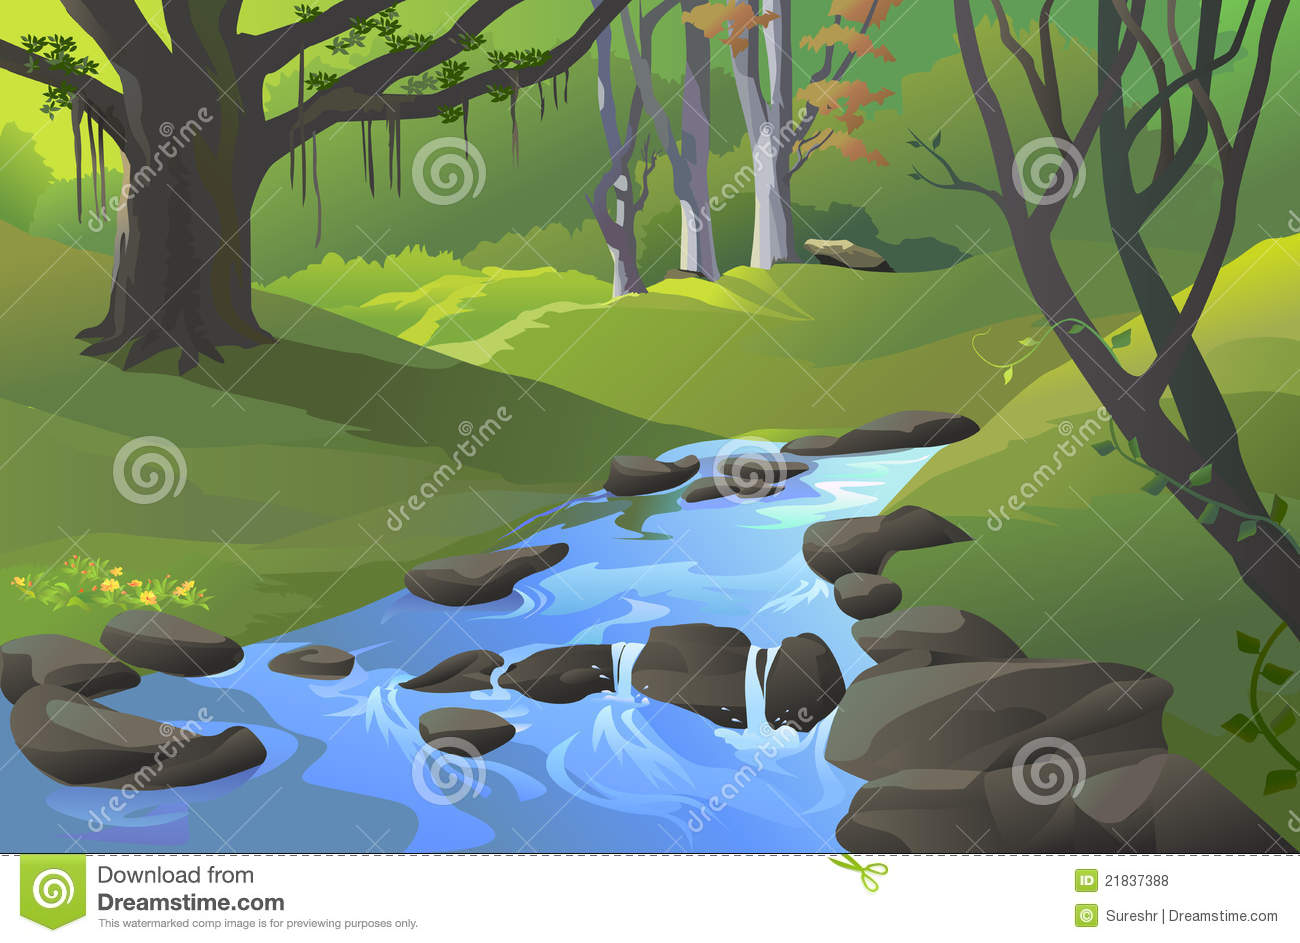 Sream clipart river pollution Images Clipart Clipart stream%20clipart Panda